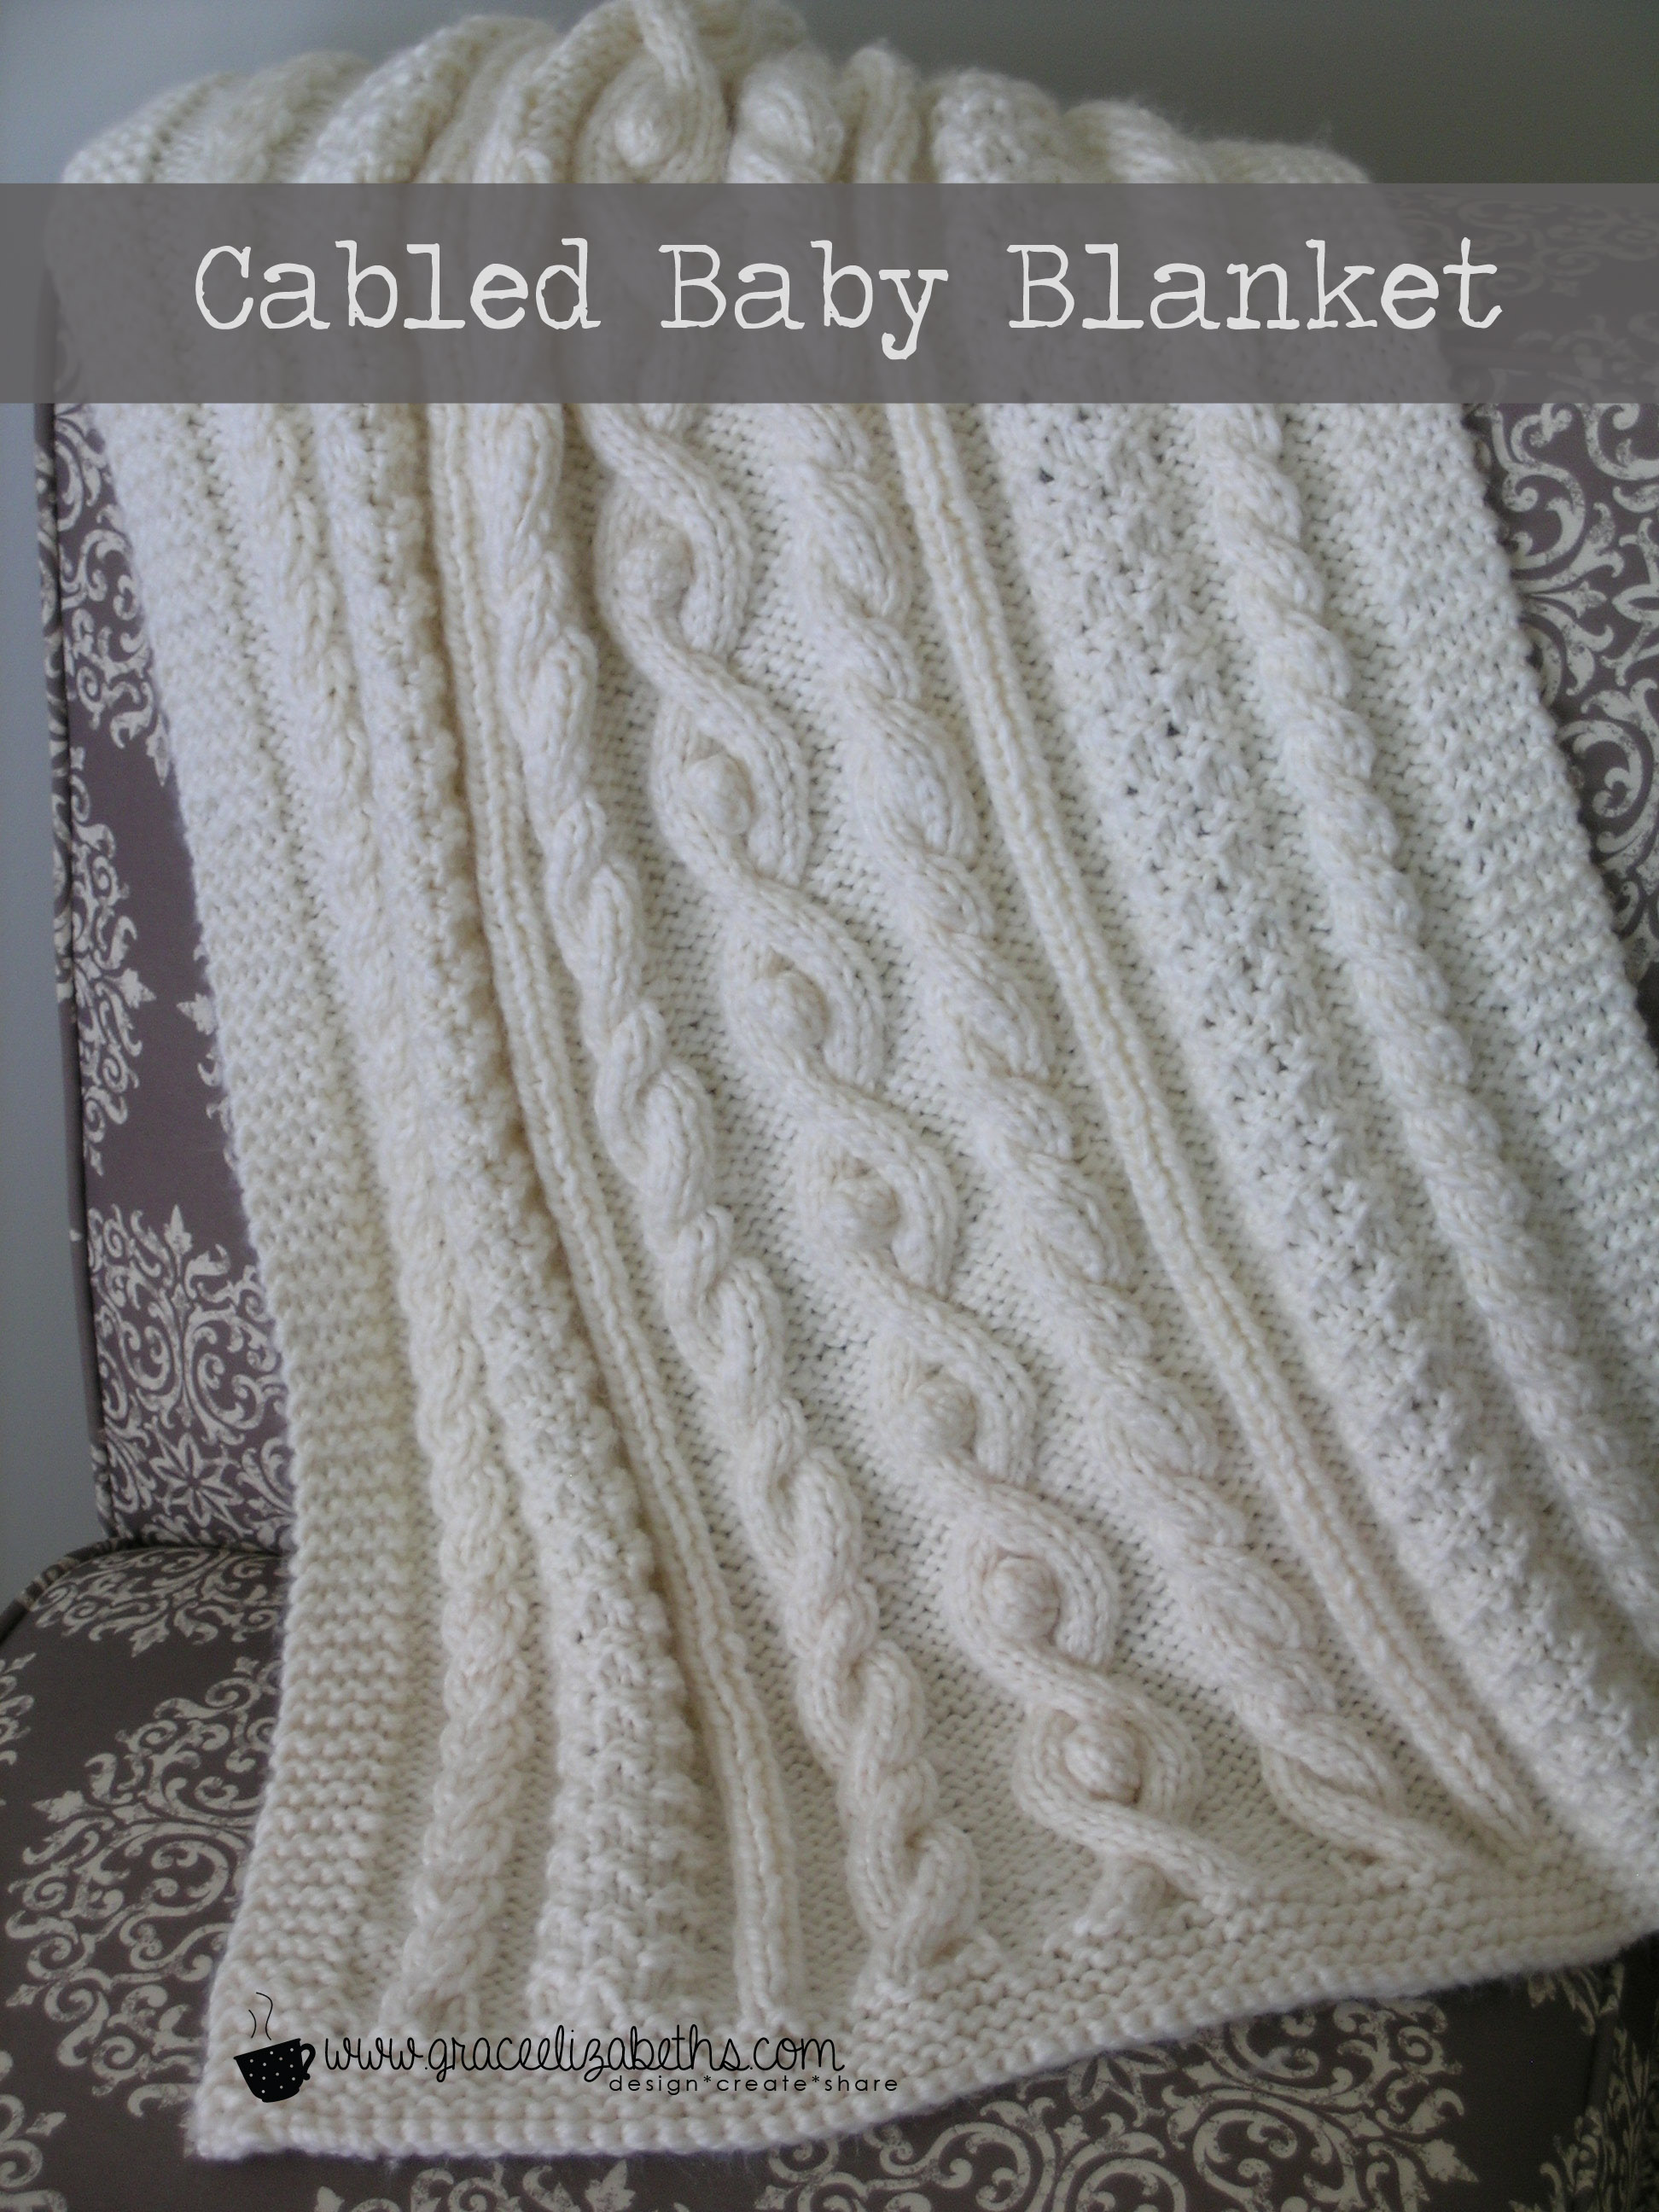 Crochet Cable Baby Blanket Pattern : Cabled Baby Blanket - Grace Elizabeths